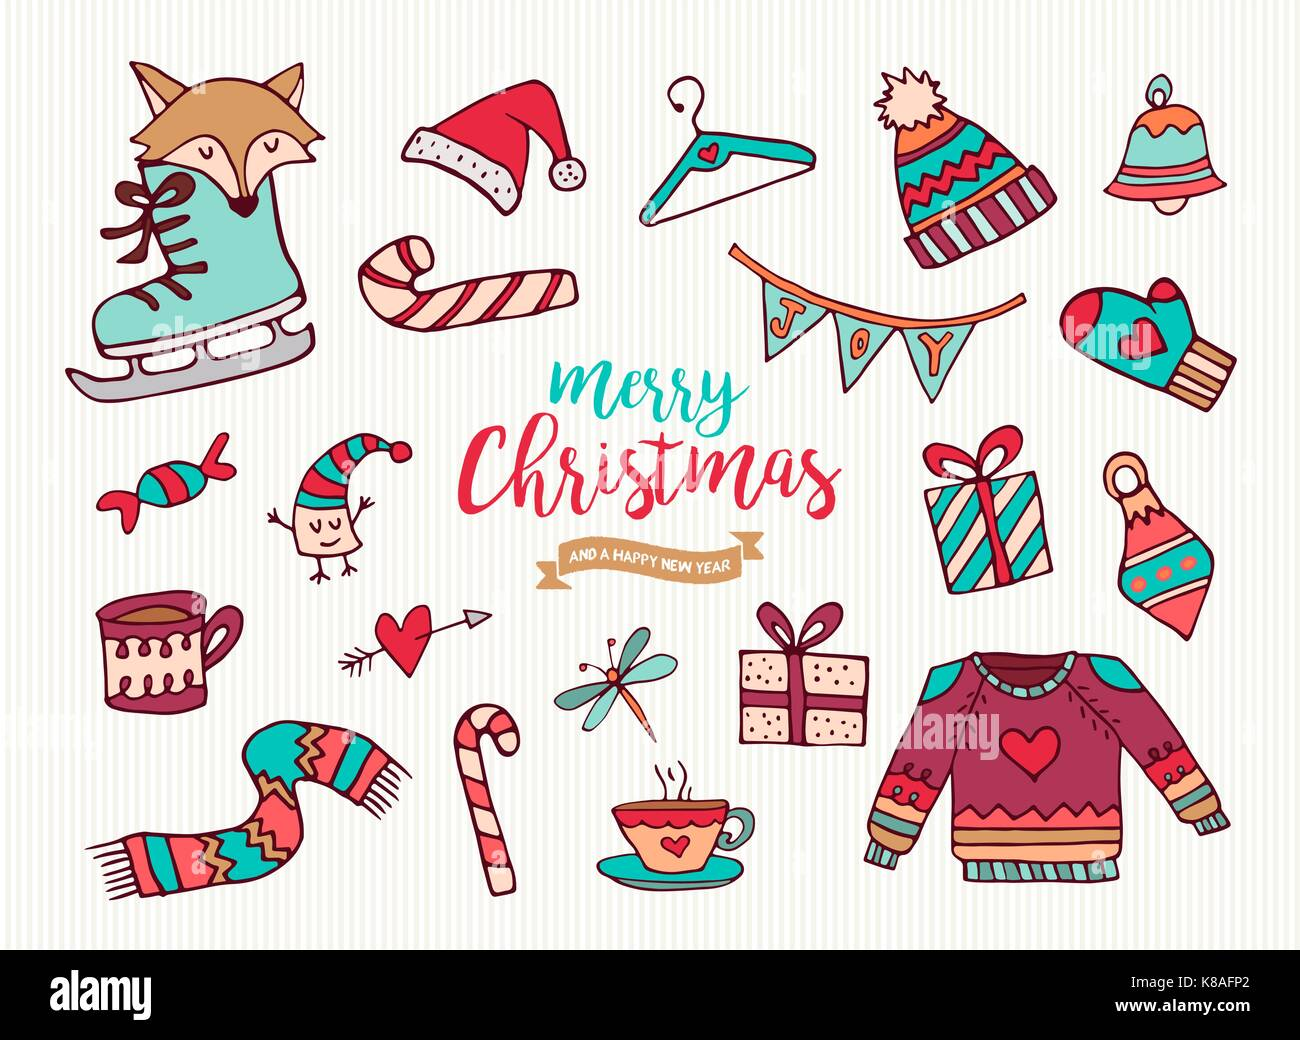 merry christmas happy new year cute festive cartoon element collection set of hand drawn holiday decoration includes funny fox winter clothing and